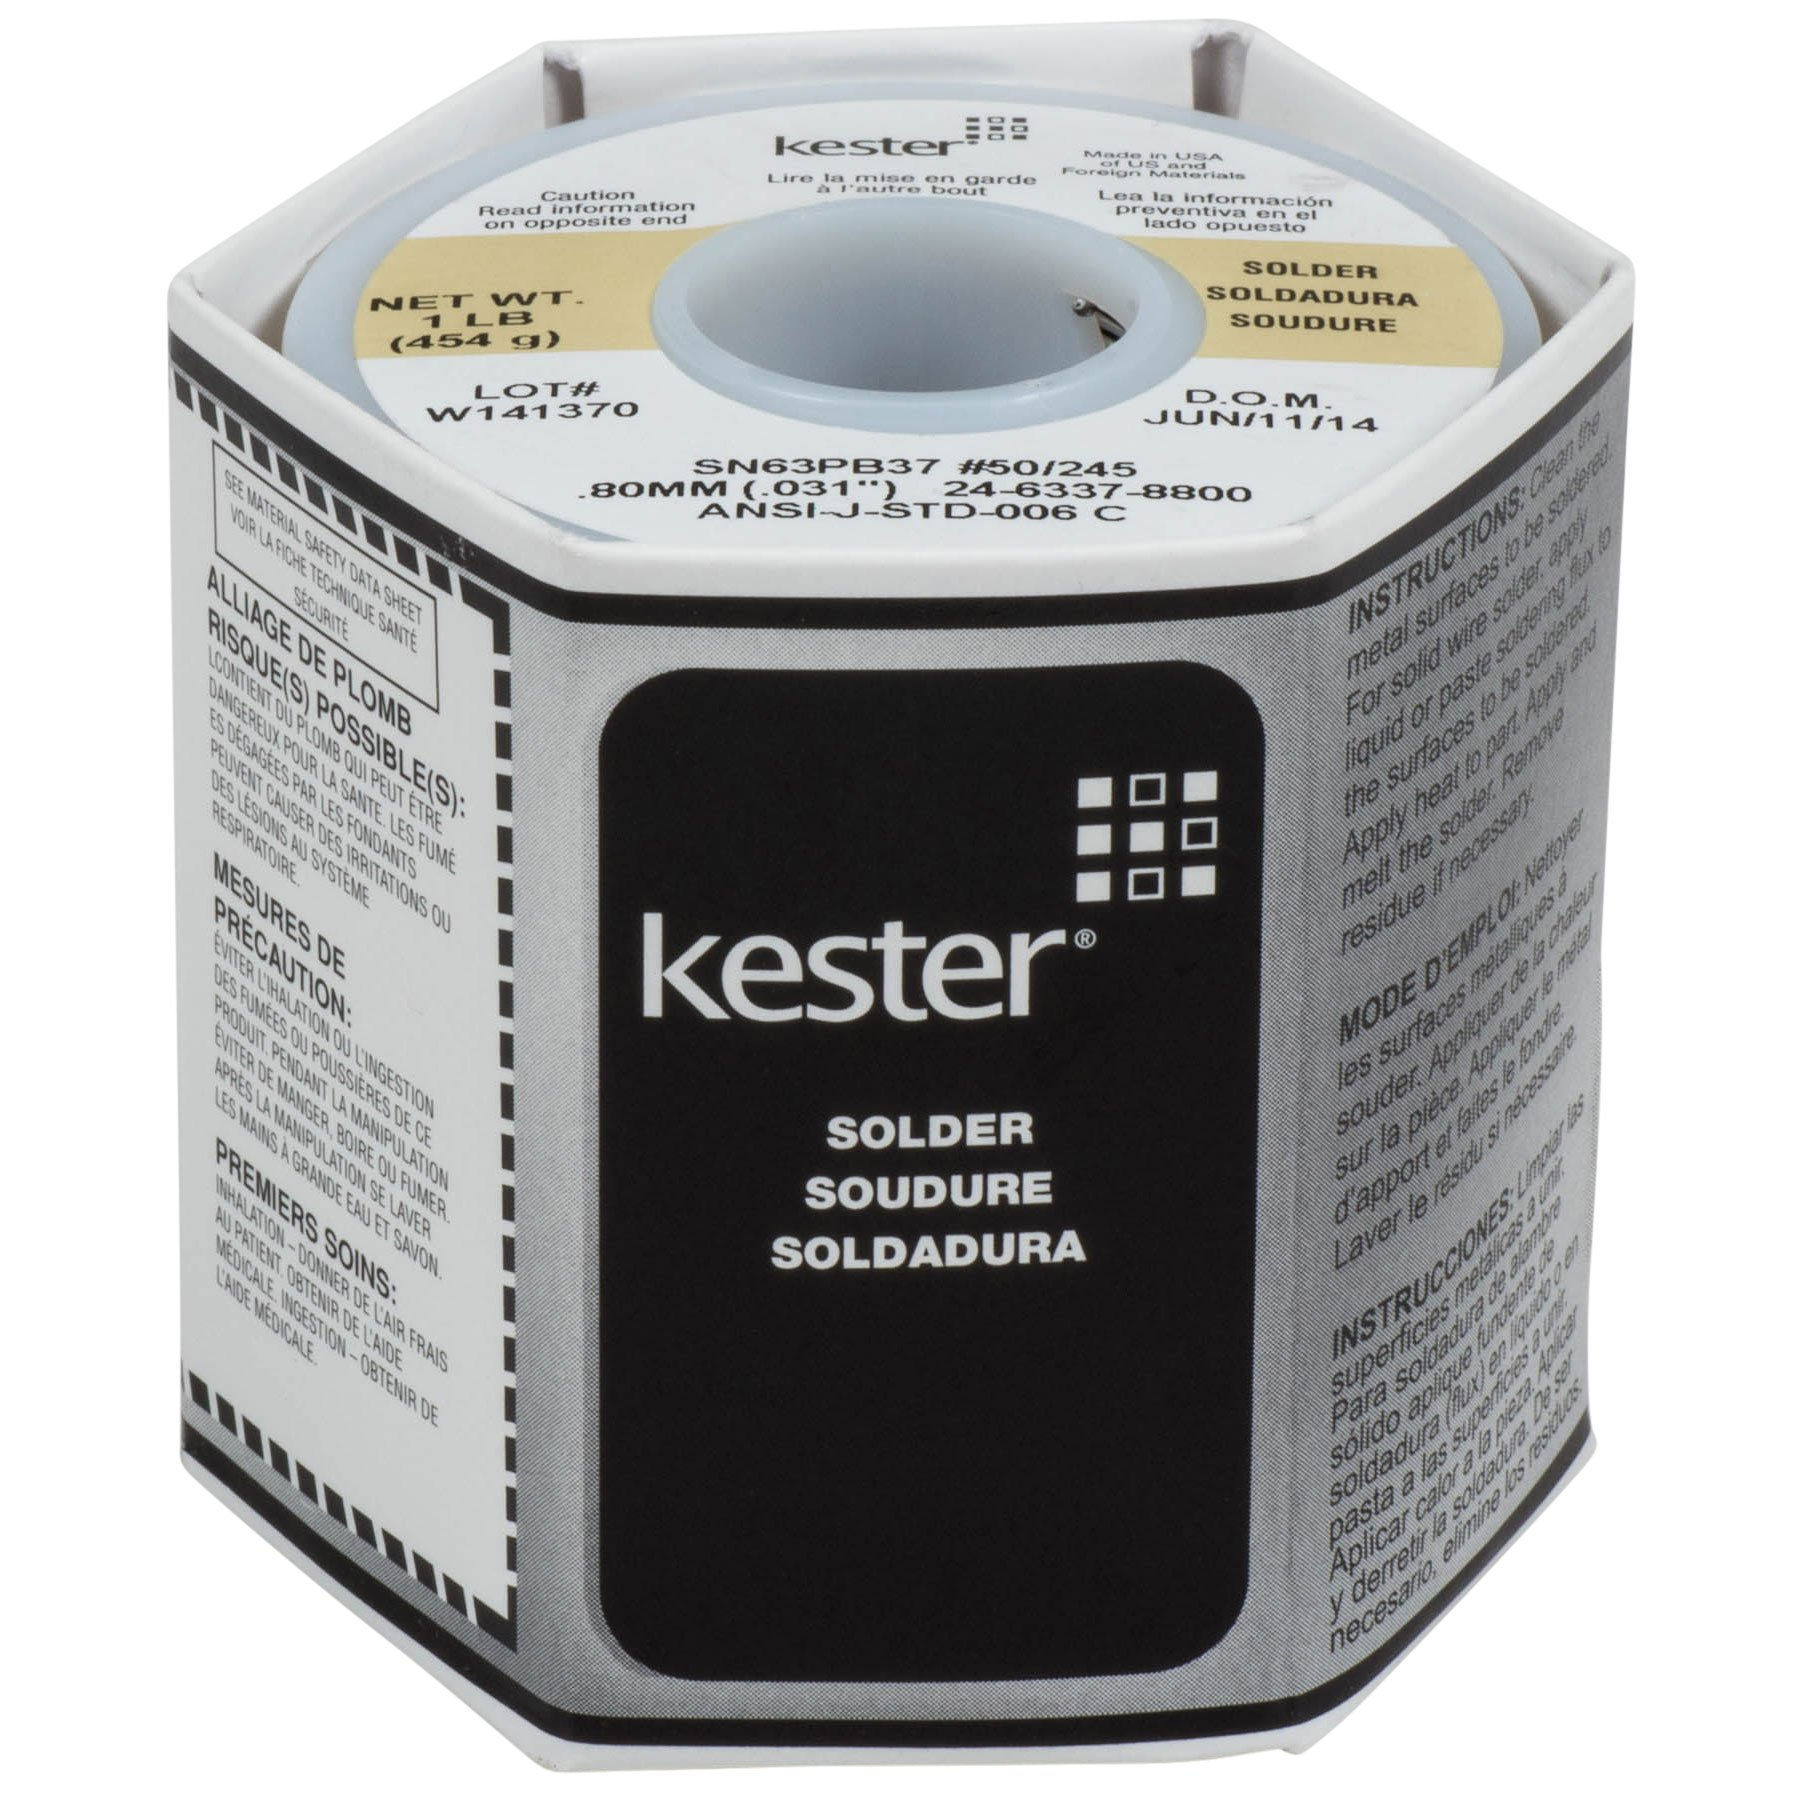 Kester 24-6337-8800 50 Activated Rosin Cored Wire Solder Roll, 245 No